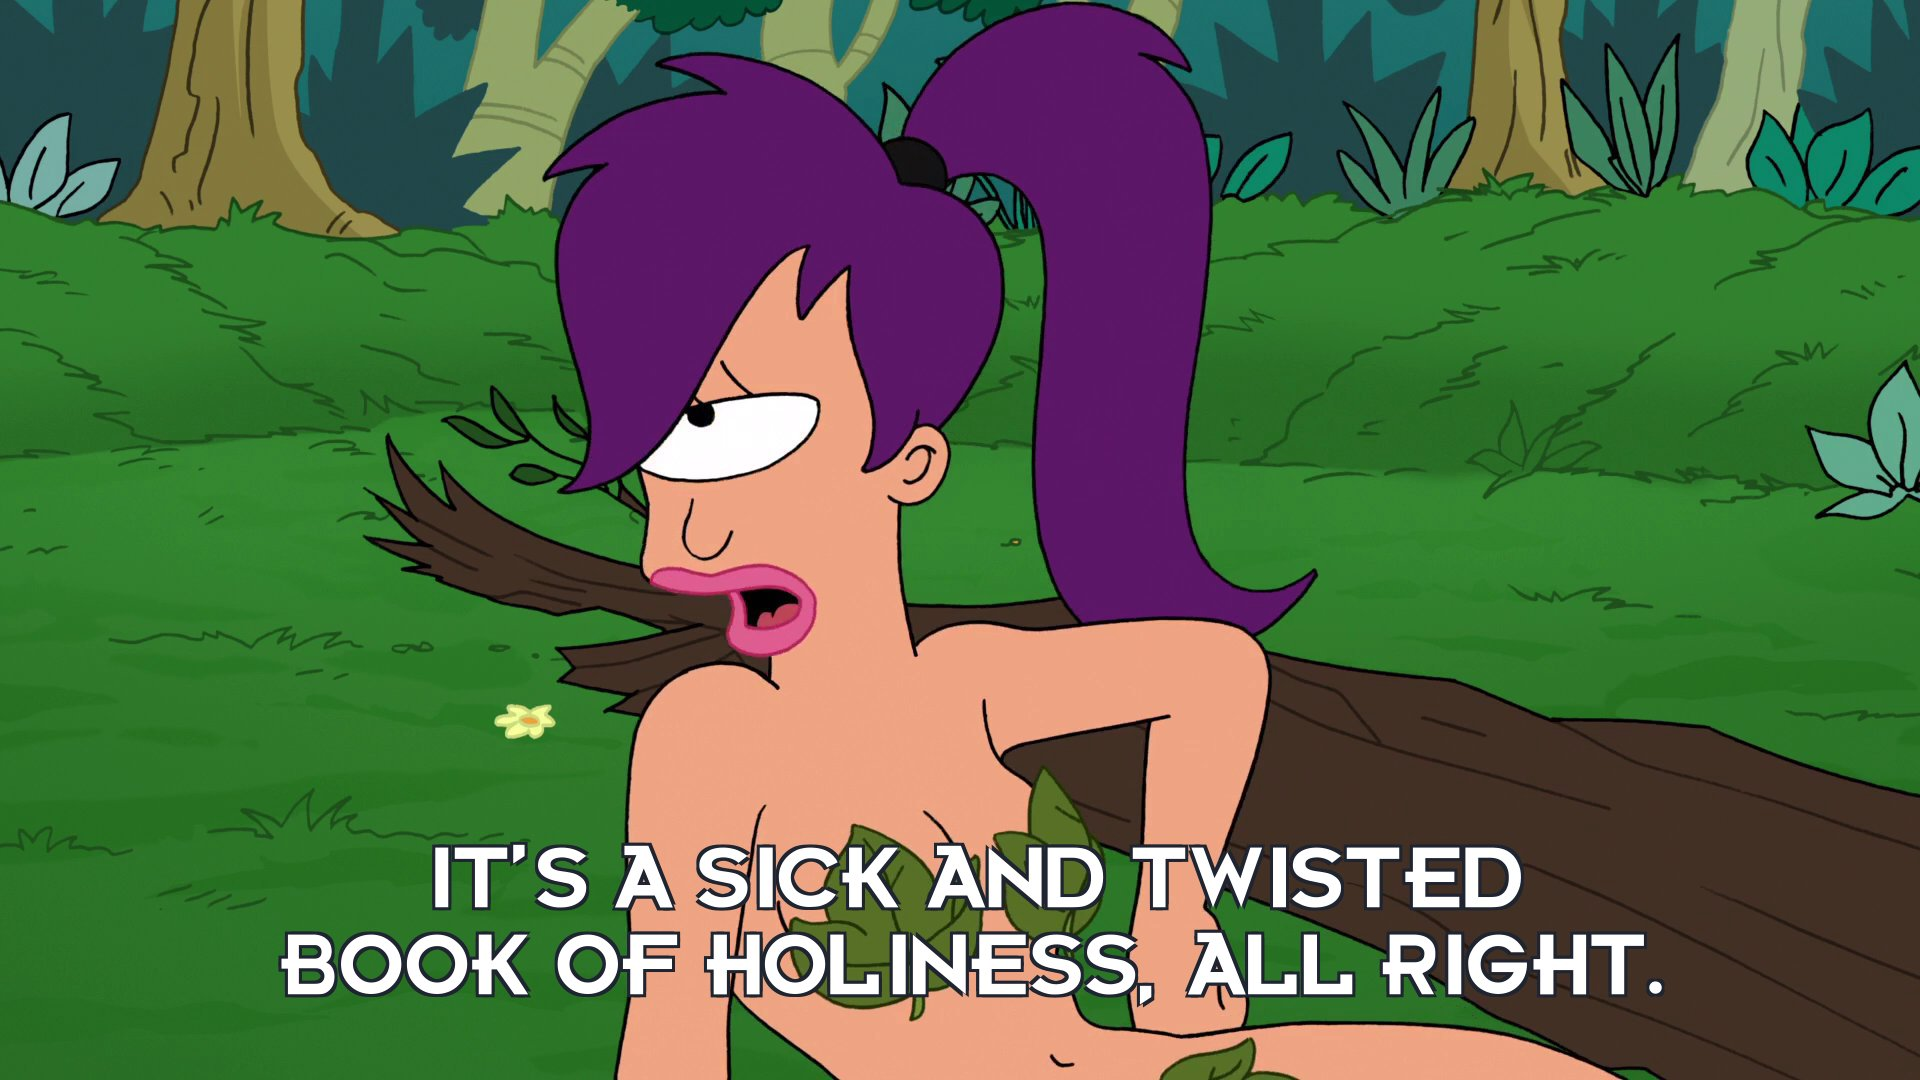 Turanga Leela: It's a sick and twisted book of holiness, all right.